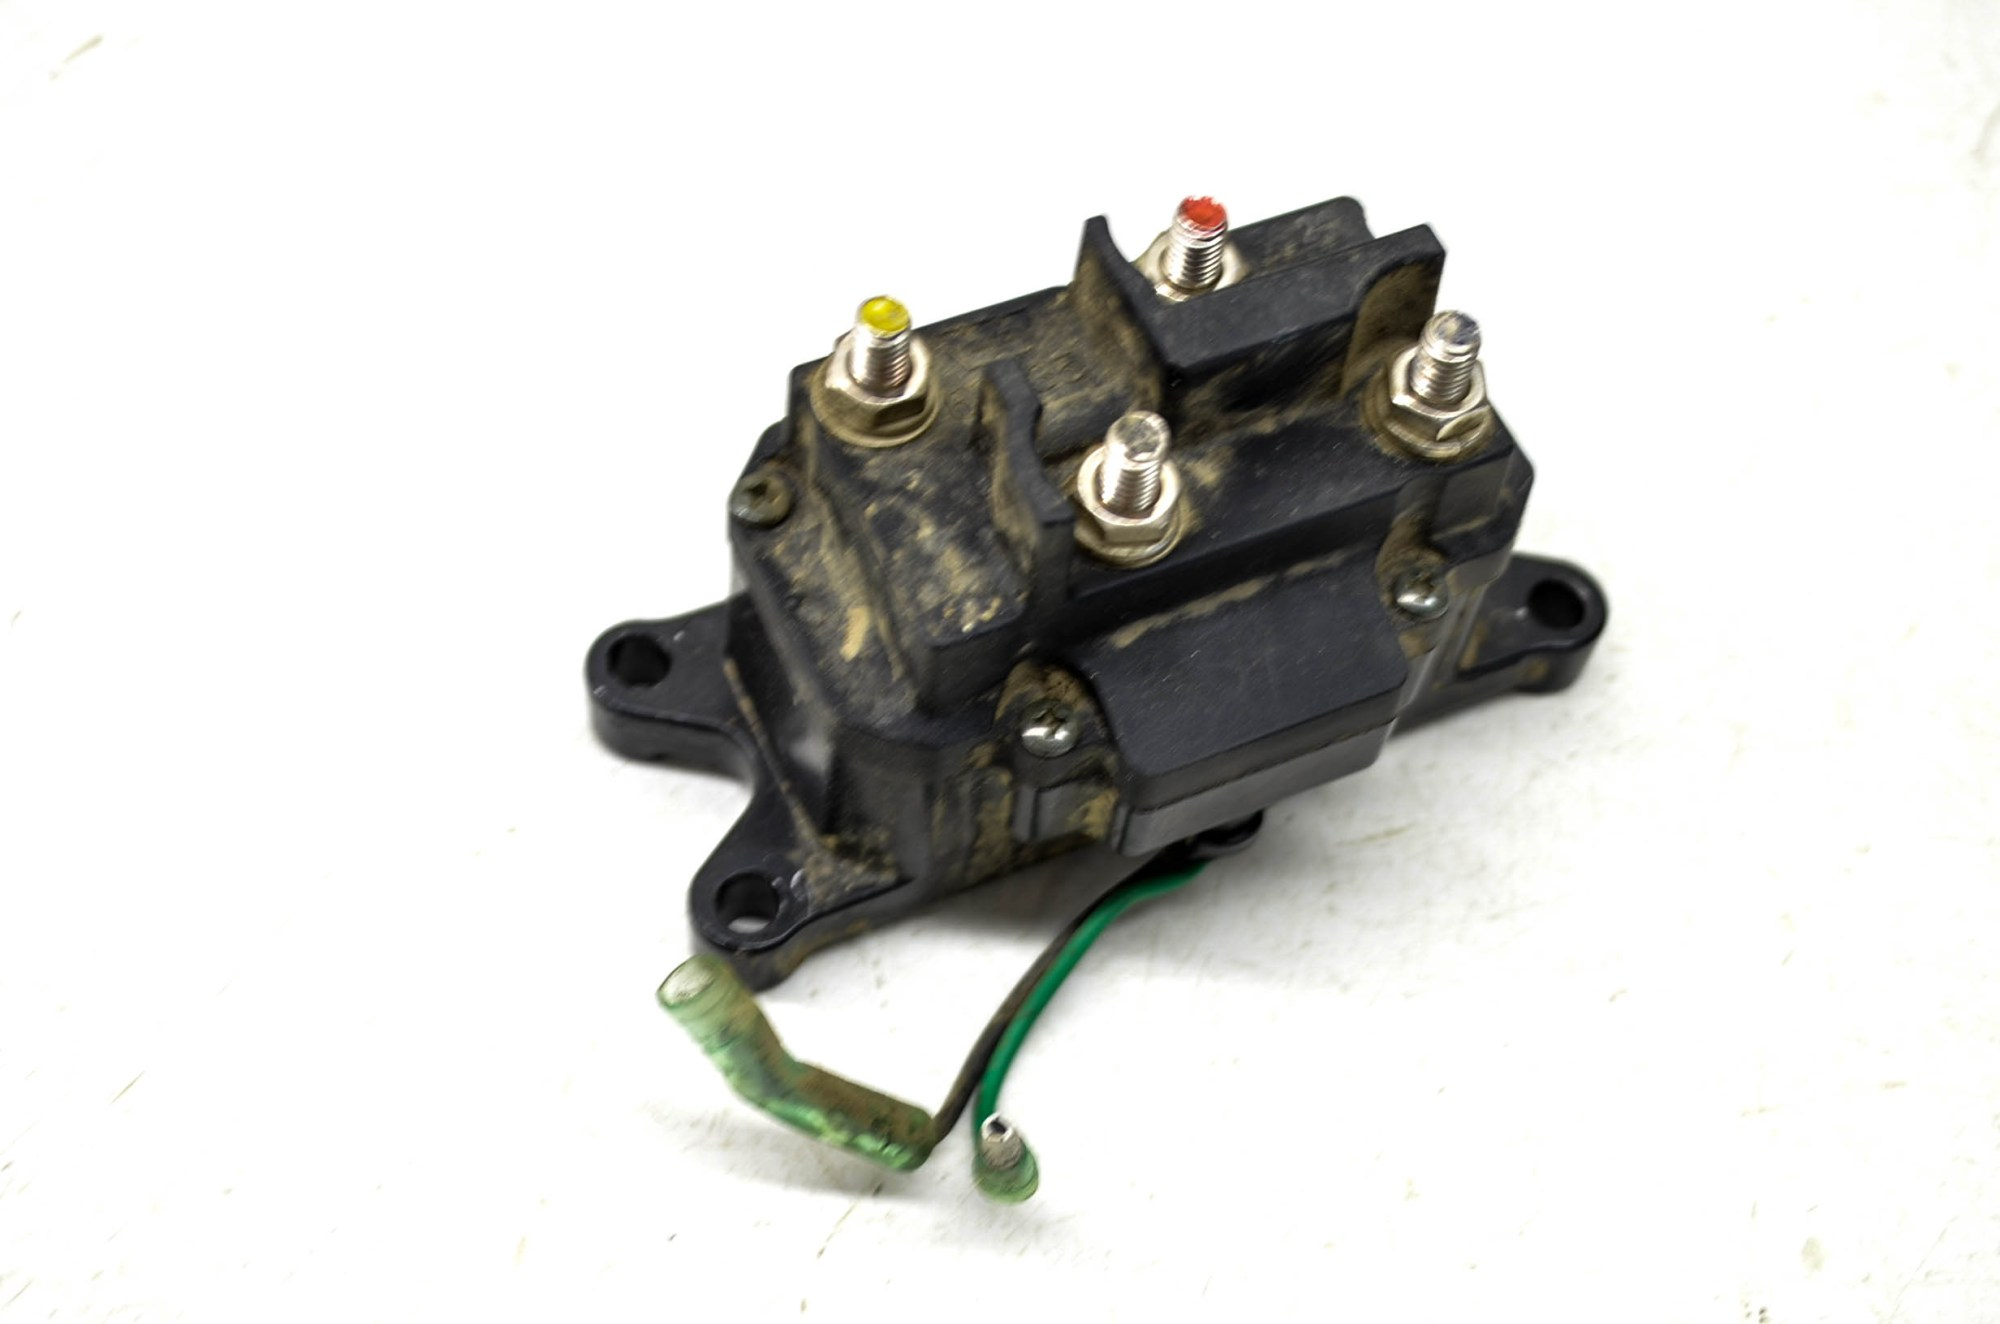 hight resolution of 07 can am outlander max 400 warn winch solenoid 4x4